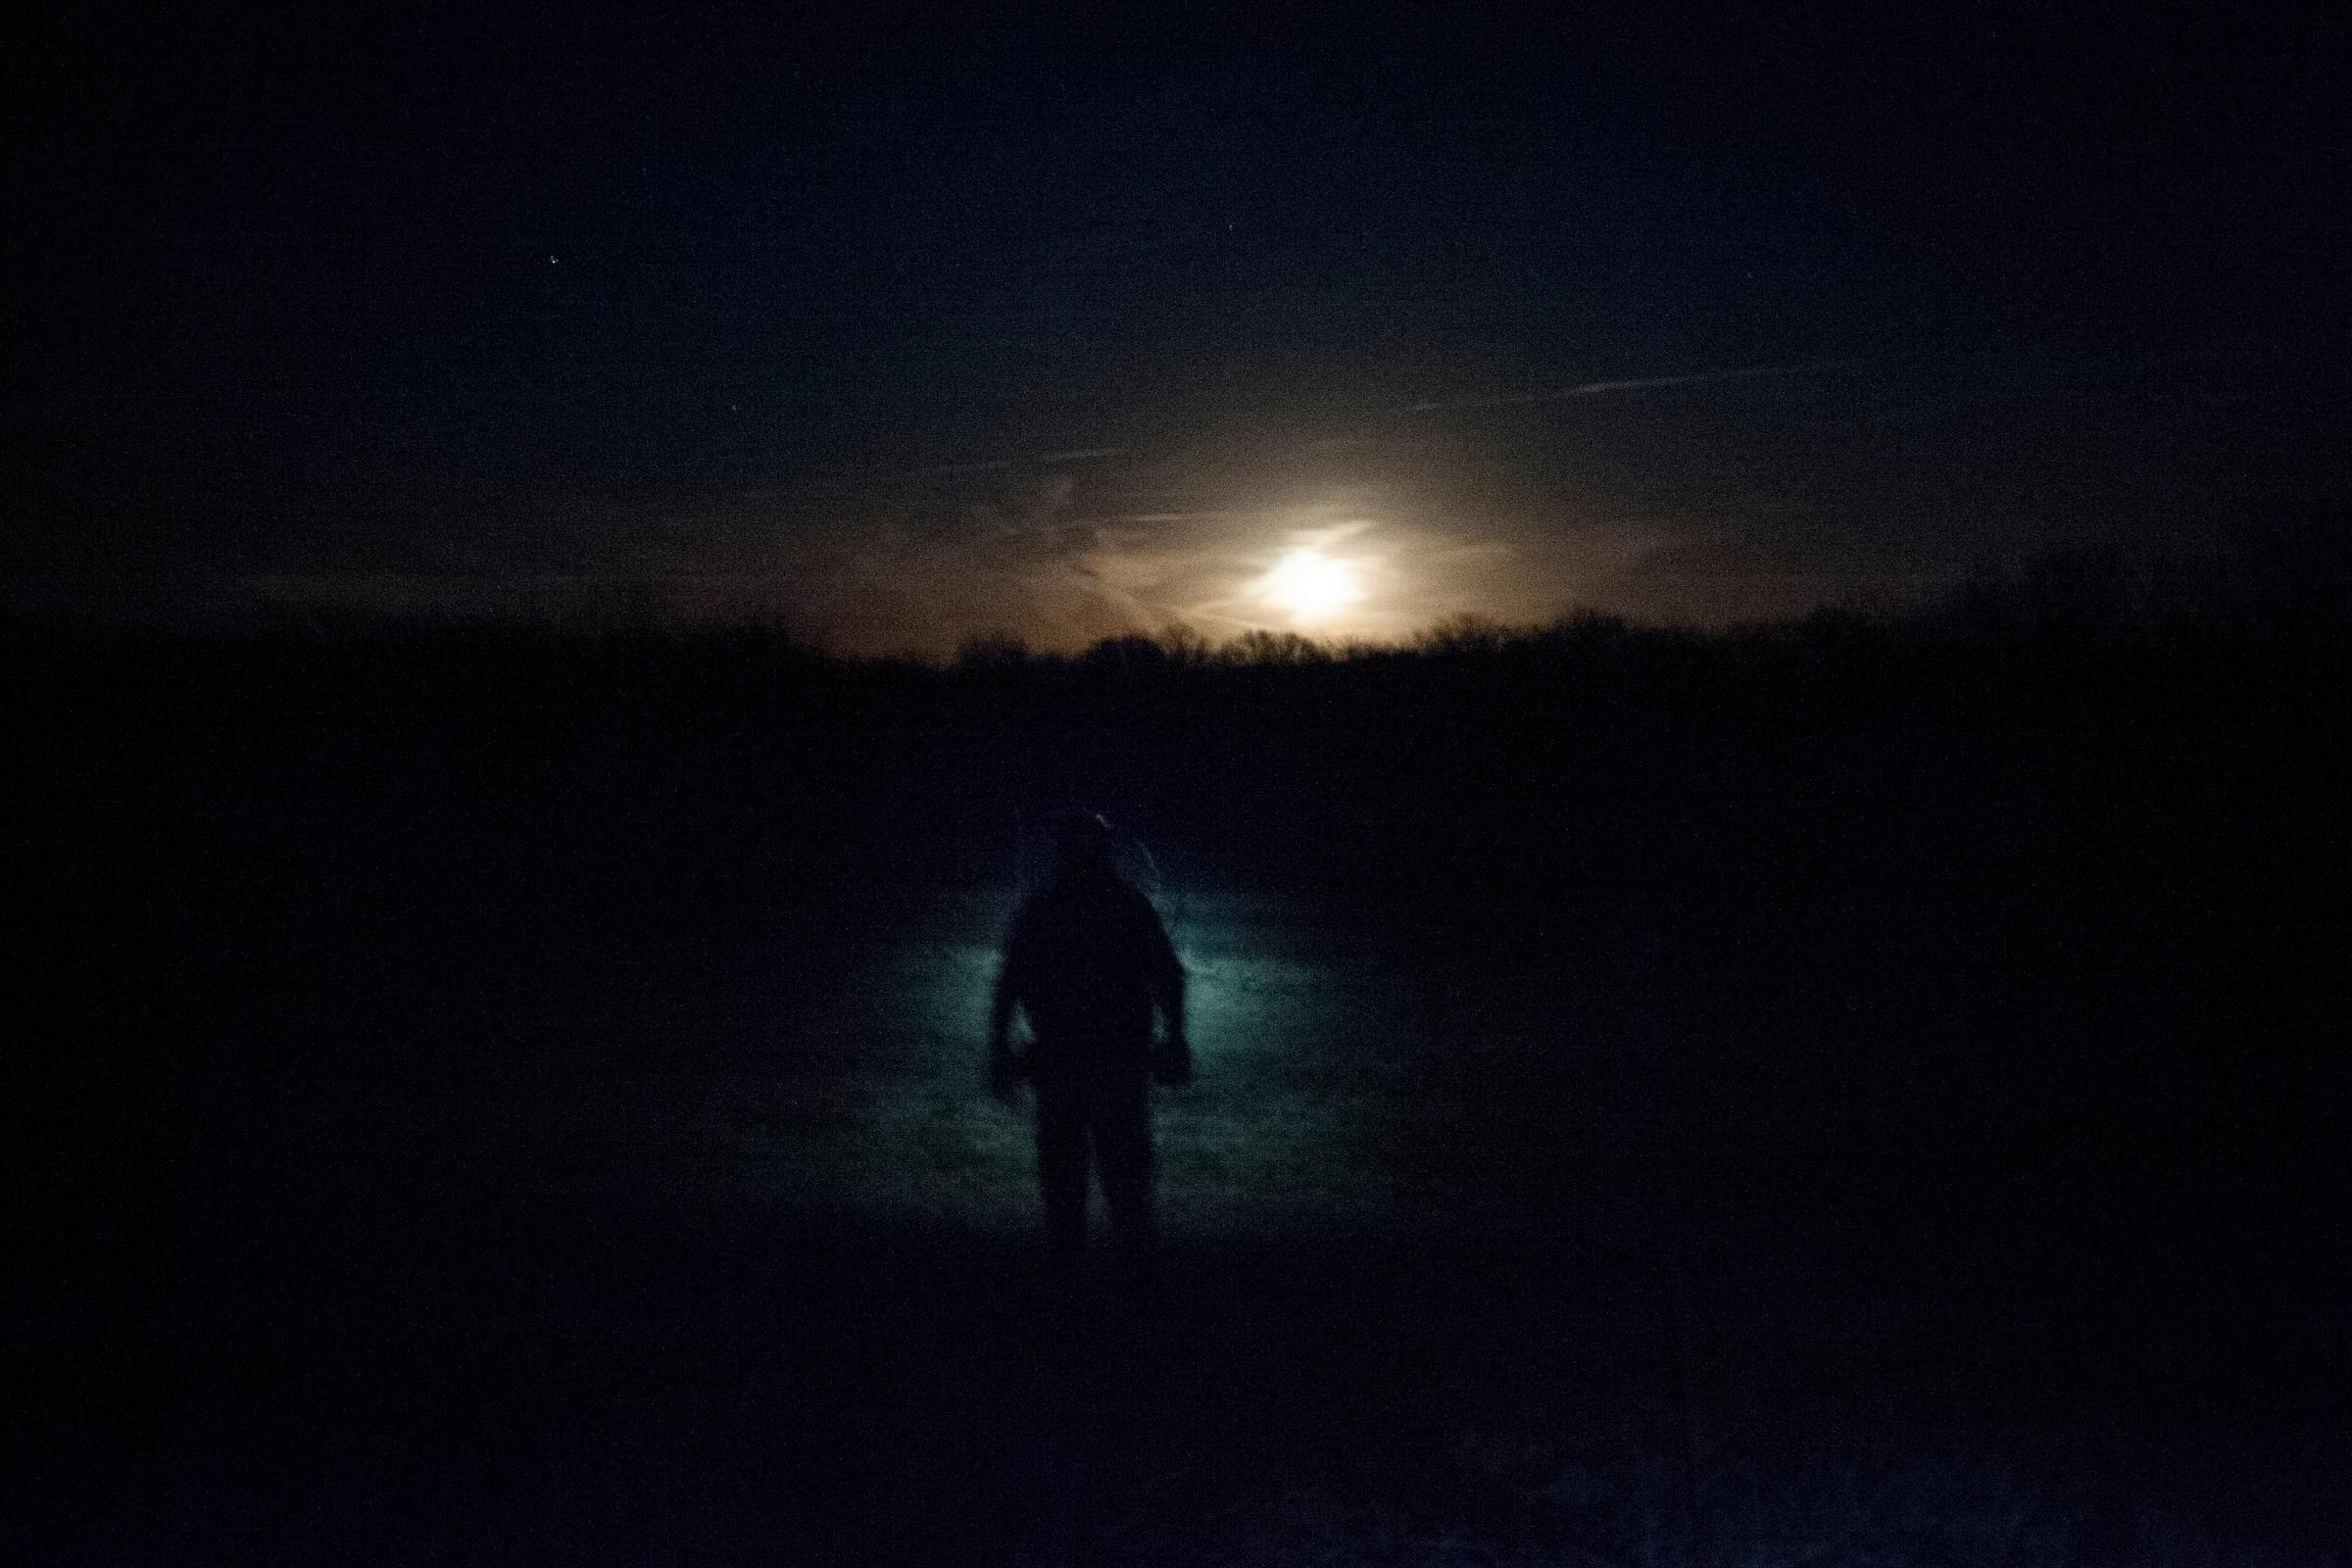 Chris Baker tracks the sound of two of his dogs who have potentially treed a raccoon near Harrisburg, Mo. during a hide hunt in the winter furbearer's season in January, 2014.